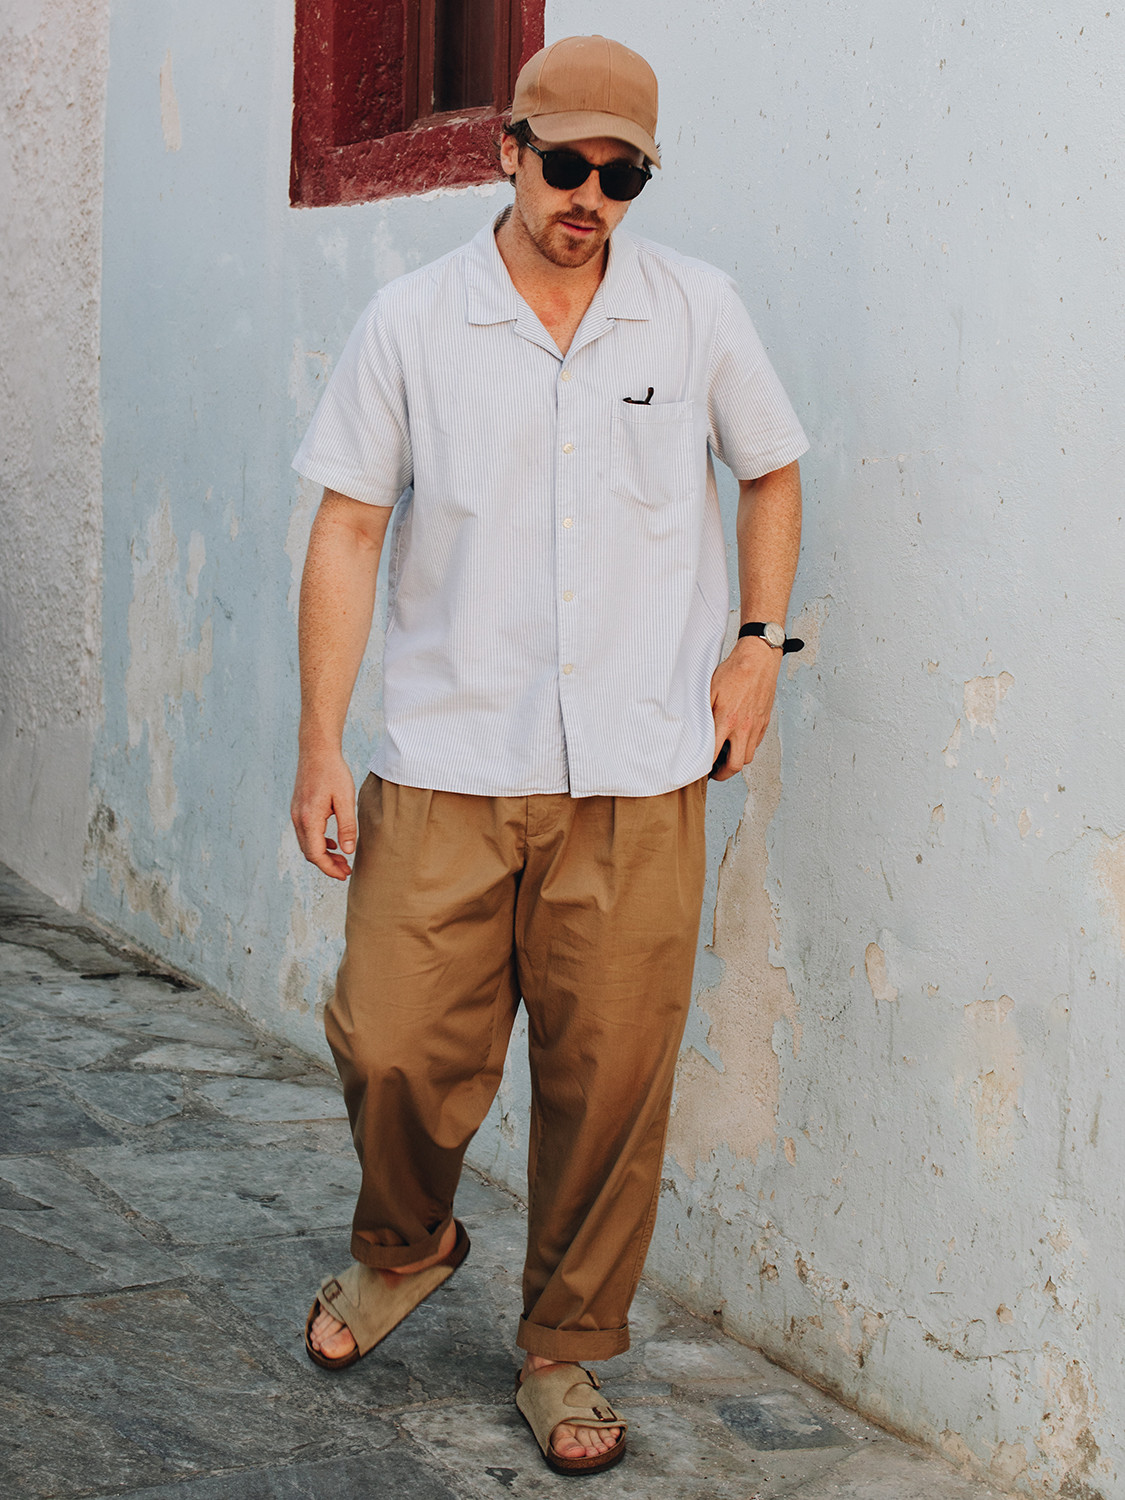 Men's outfit idea for 2021 with blue short-sleeved plain shirt, neutral chinos, black thick framed sunglasses, neutral baseball / snapback cap. Suitable for summer.